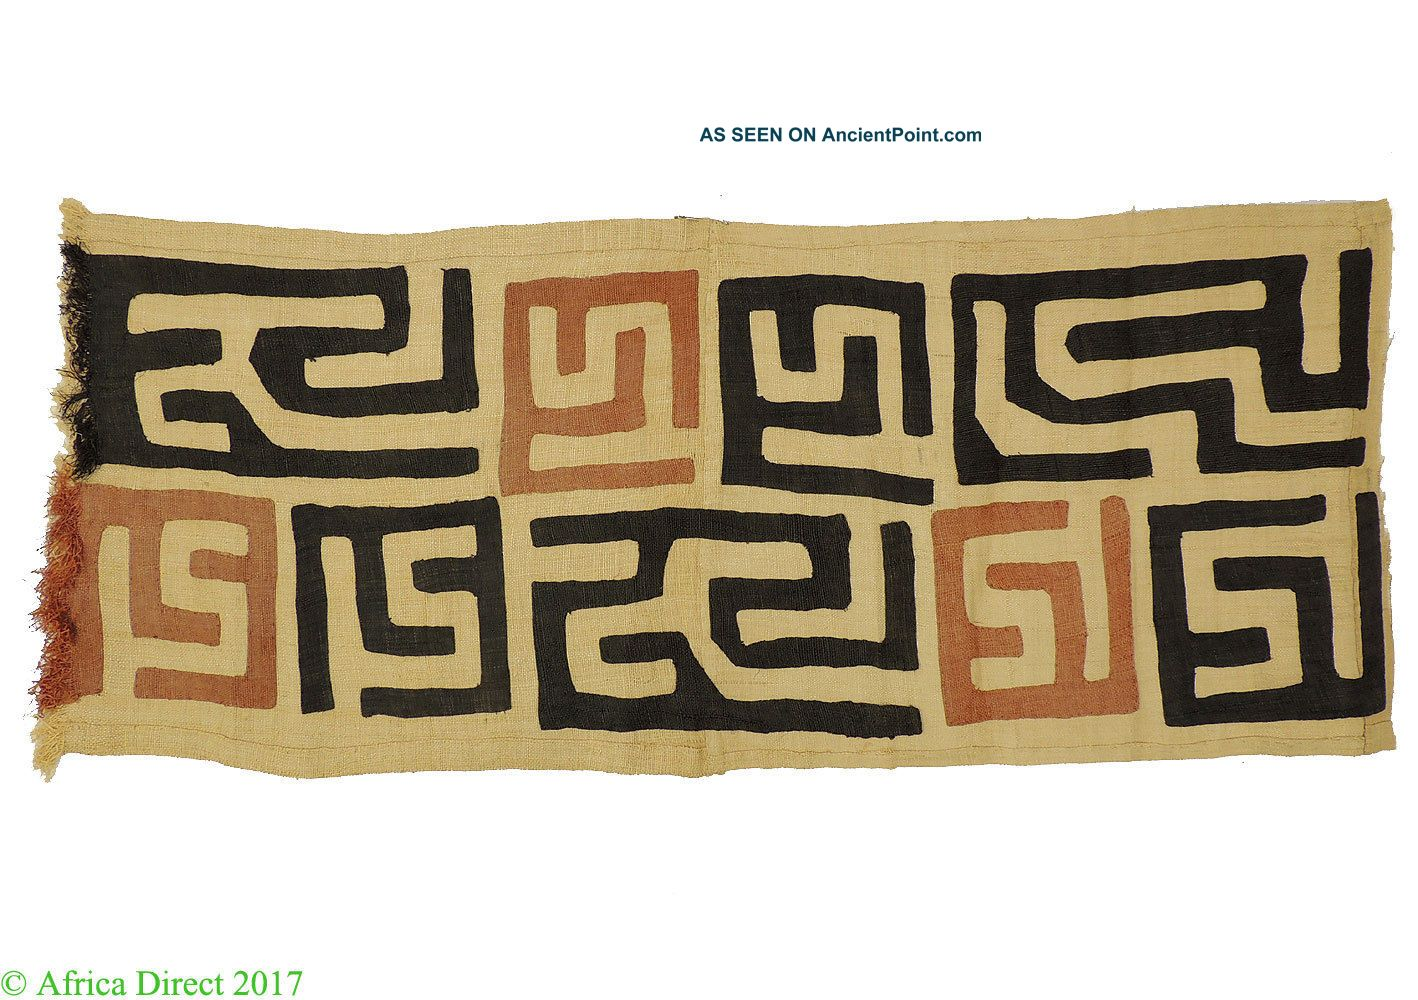 Kuba Textile Raffia Handwoven Congo African Art 39 Inch Other African Antiques photo